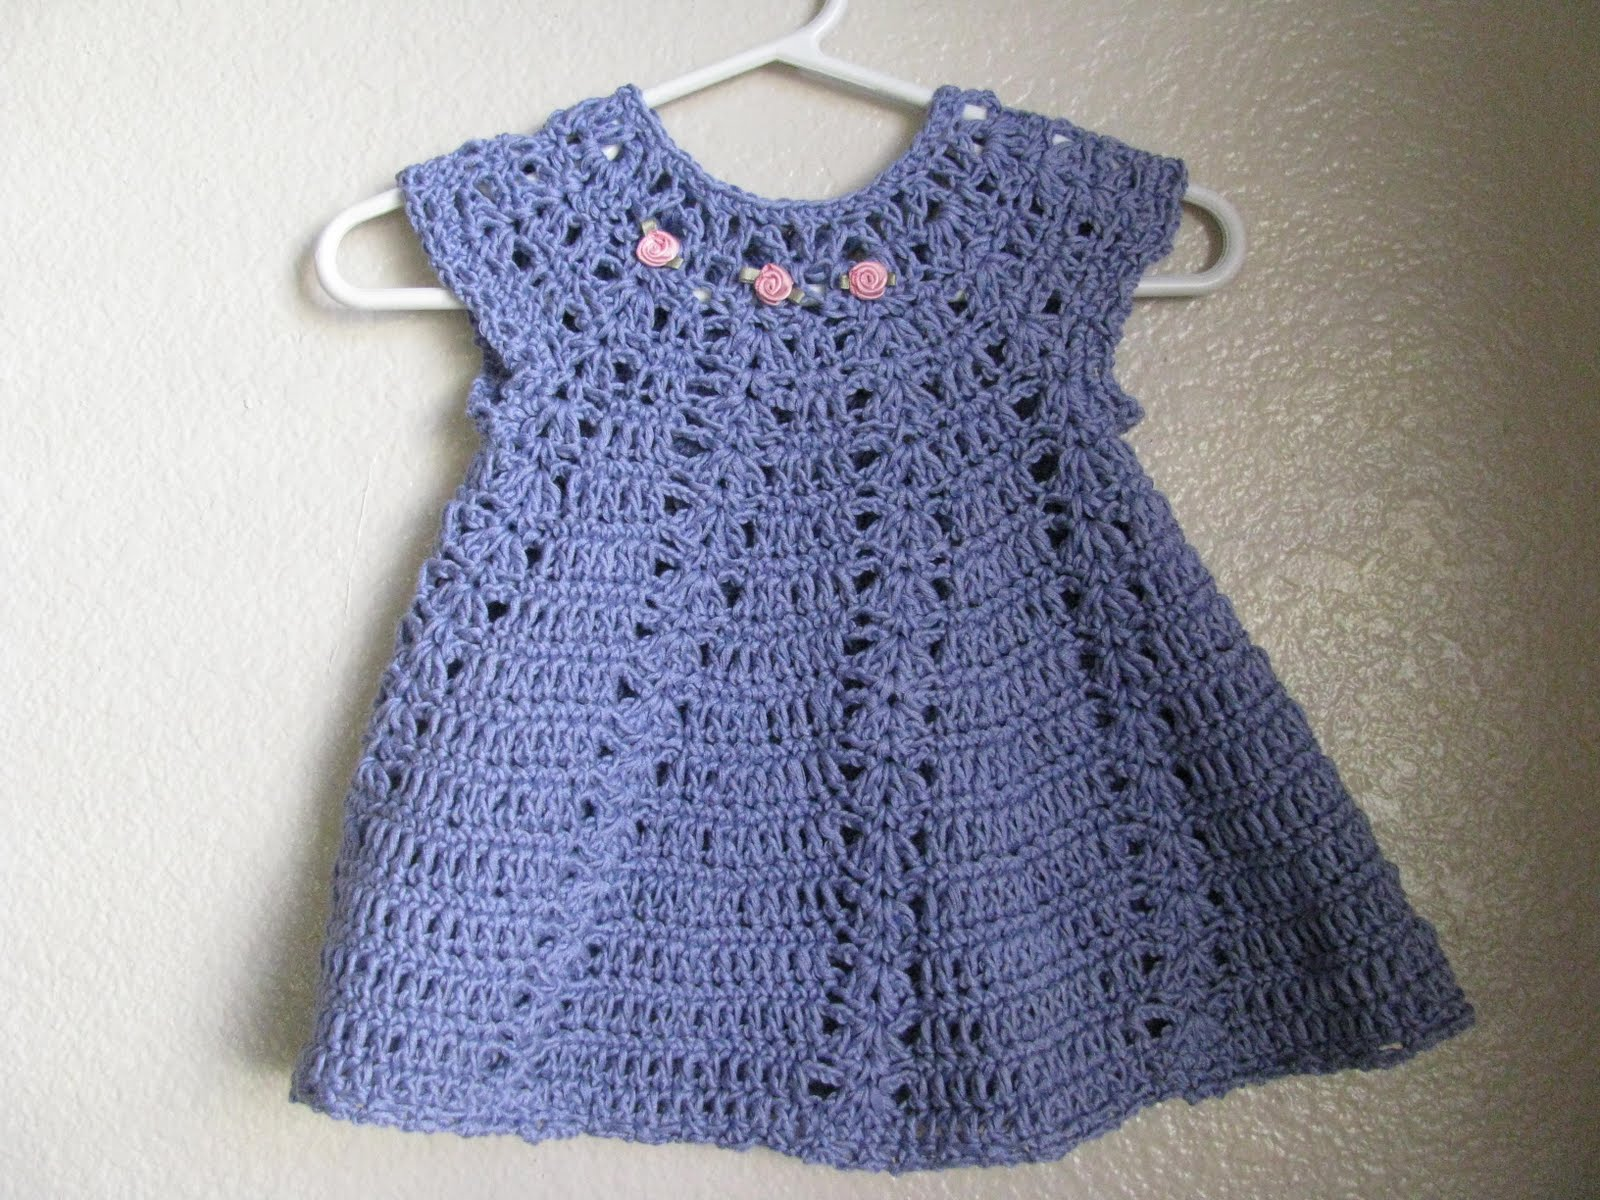 BABY CROCHET DRESS PATTERN PINEAPPLE Crochet Patterns